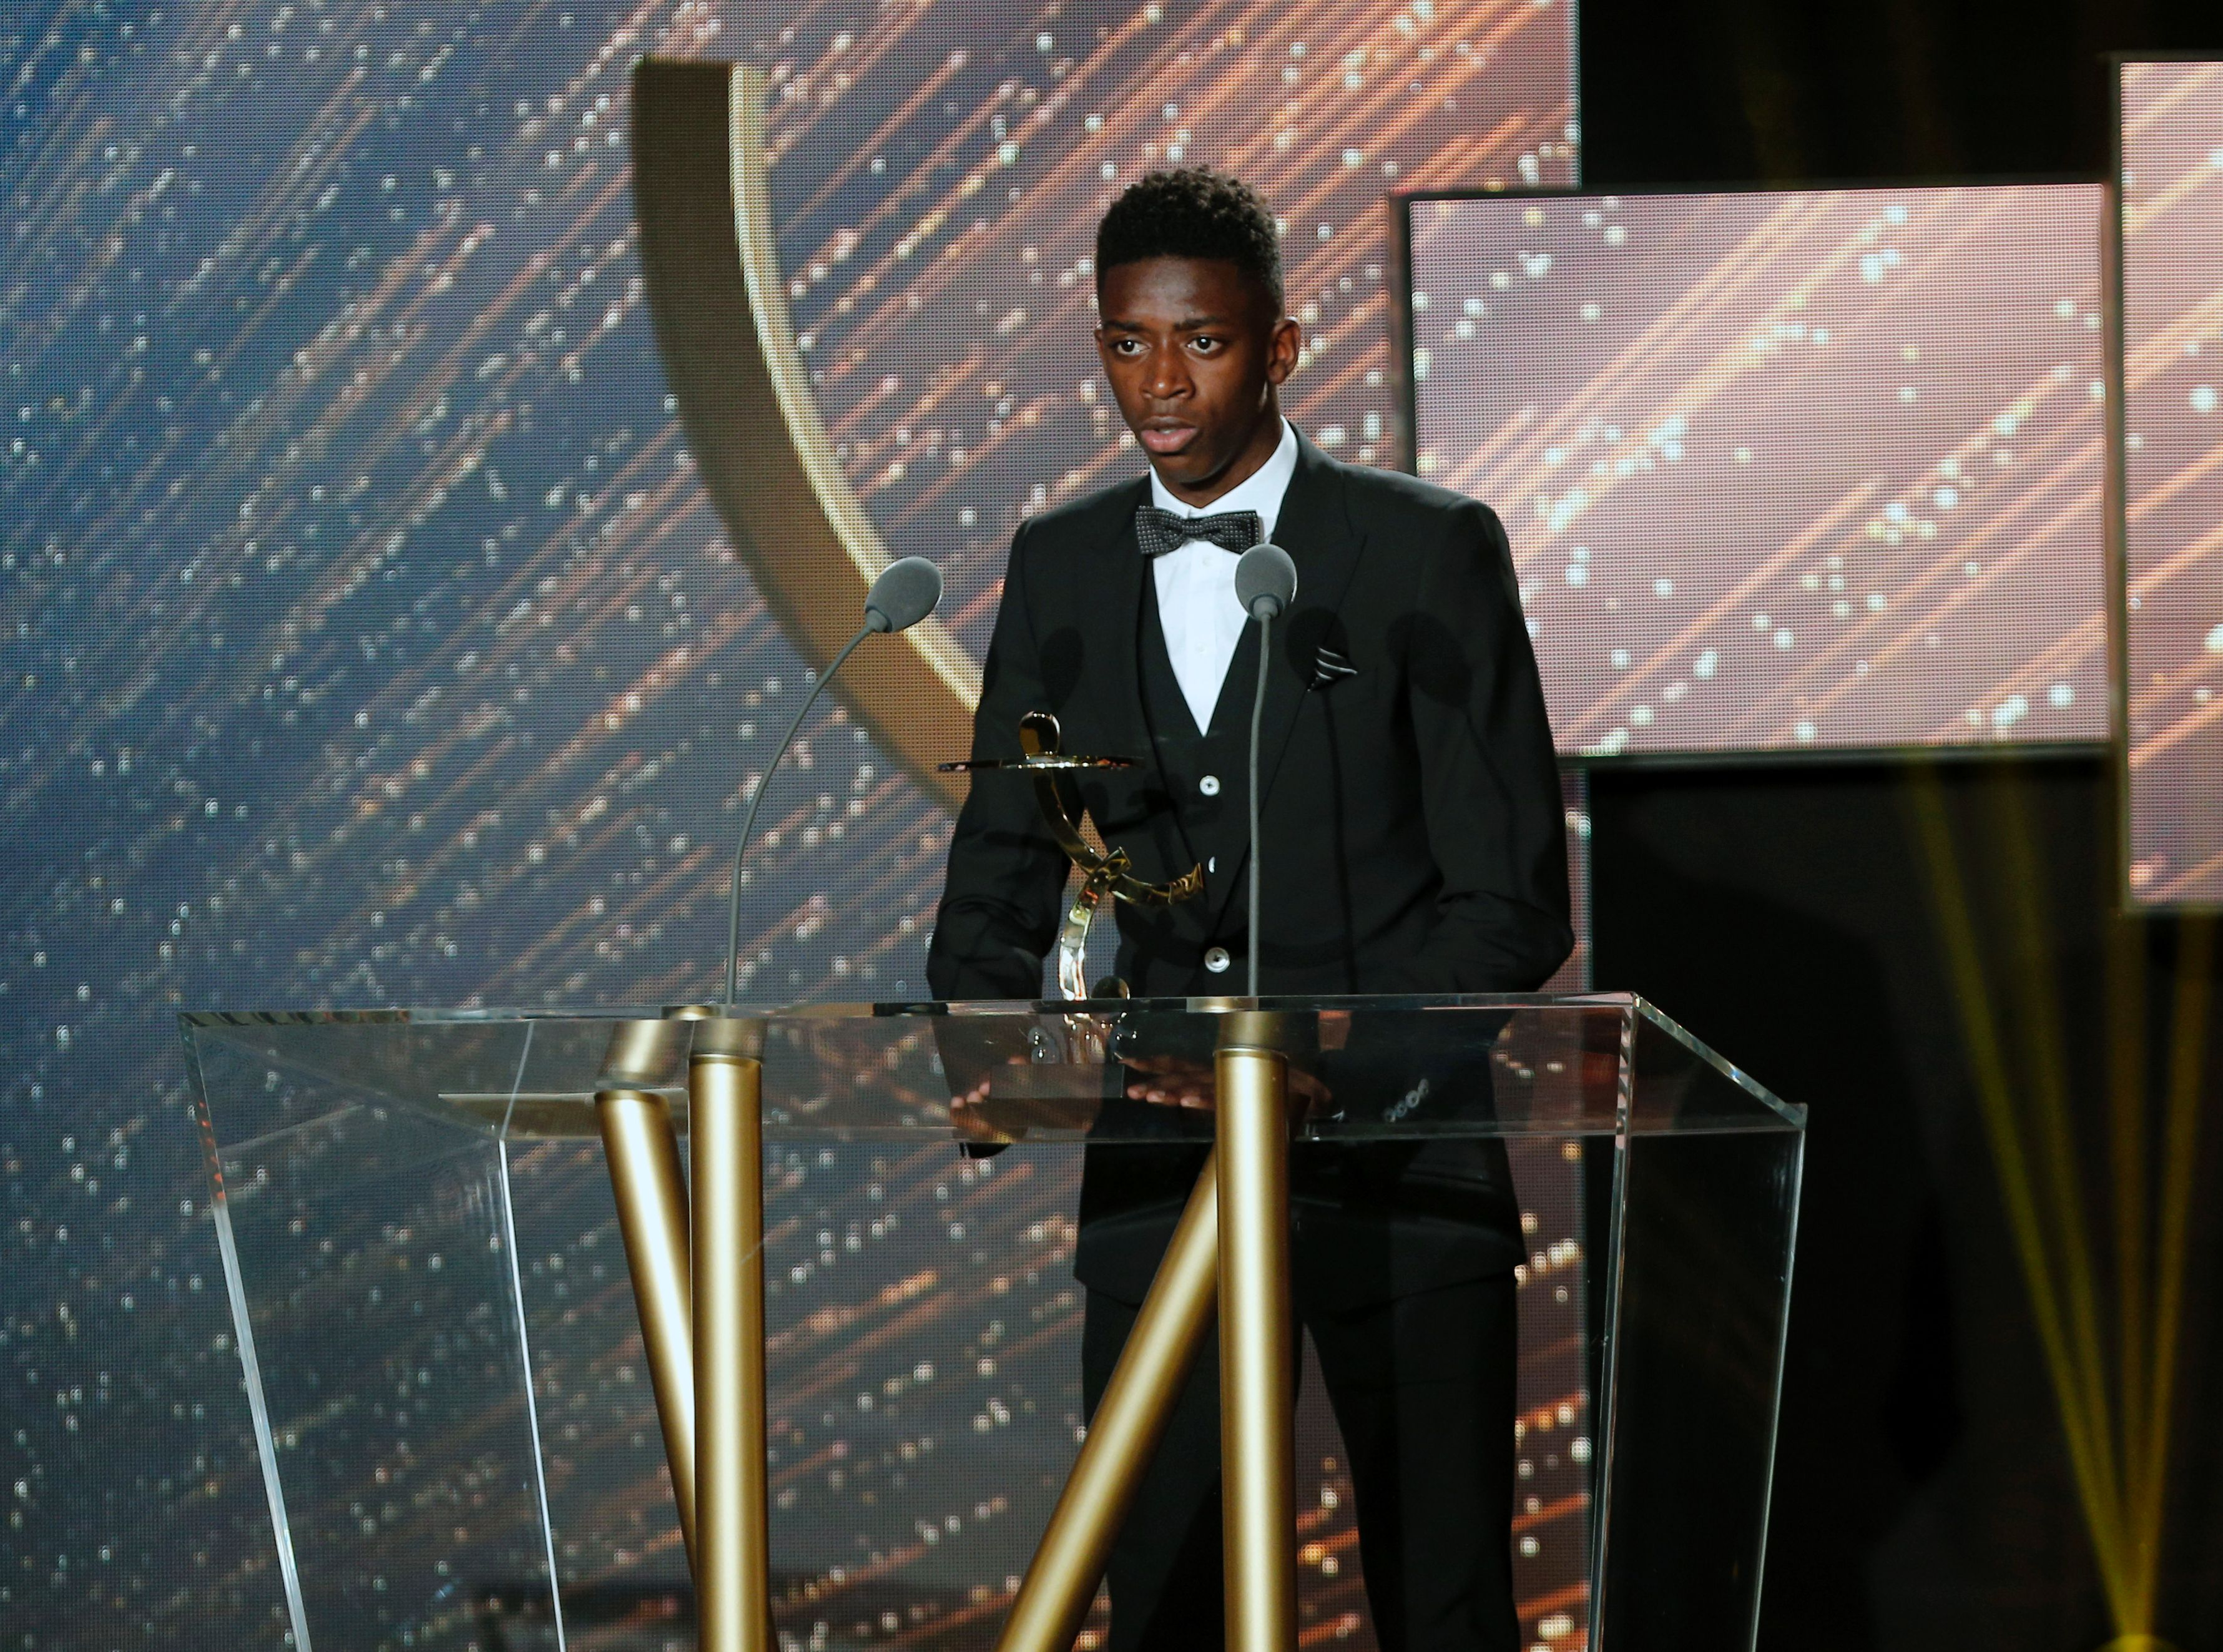 French Rennes' forward Ousmane Dembele receives the Ligue 1 2015-2016 young player of the year award during the 25th professionnal football players national union's (Union Nationale des Footballeurs professionnels, UNFP) trophies cemenony in Paris on May 8, 2016. / AFP / FRANCOIS GUILLOT        (Photo credit should read FRANCOIS GUILLOT/AFP/Getty Images)